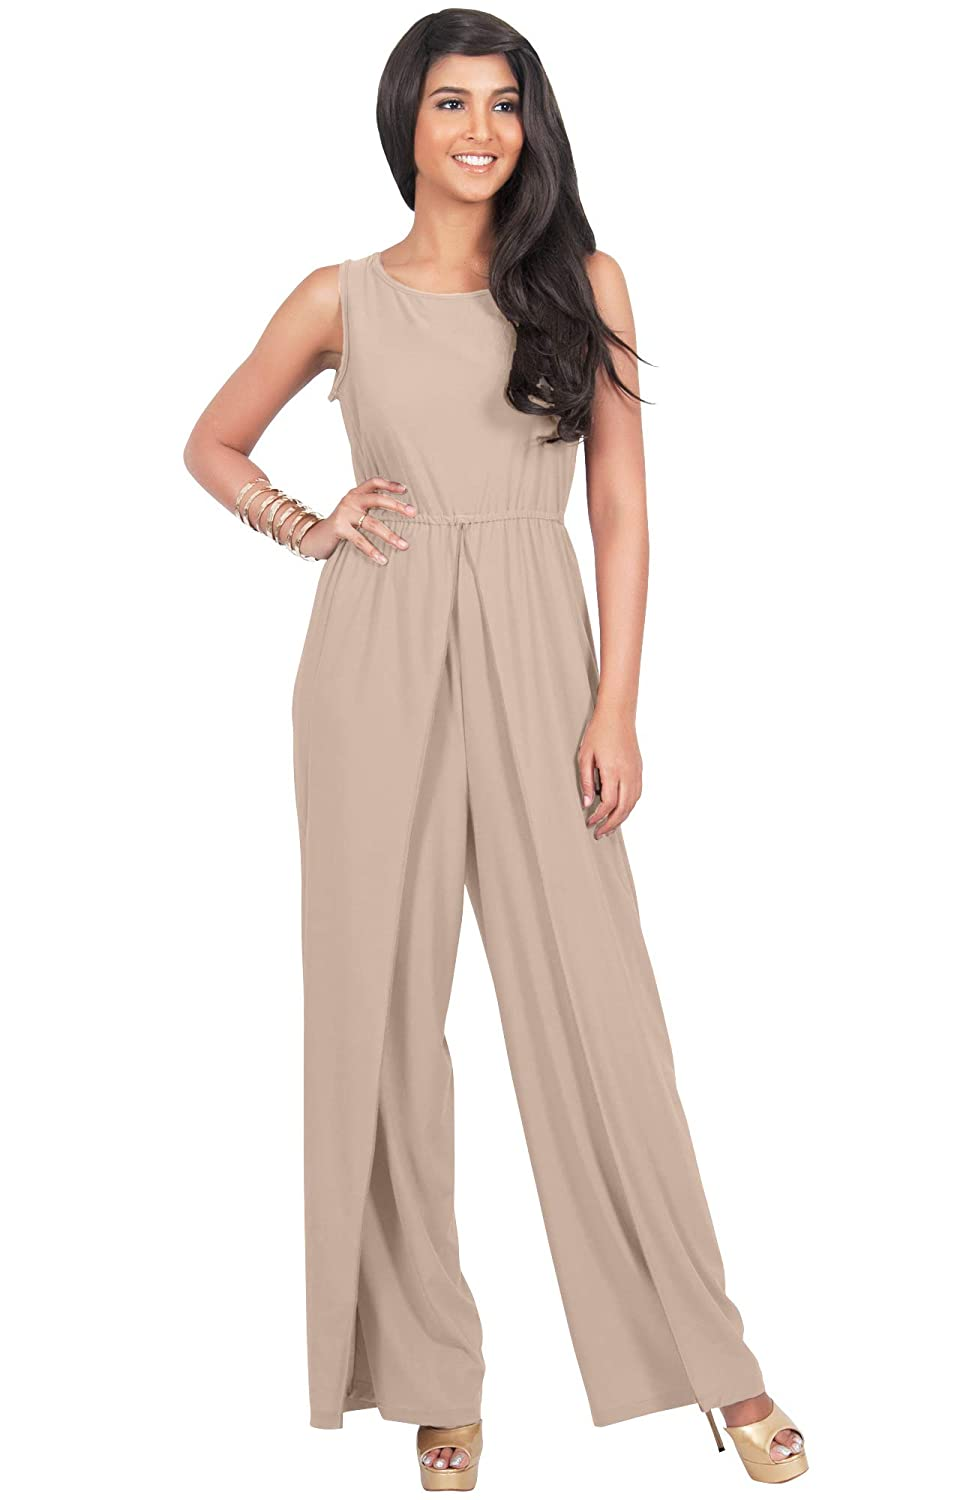 Koh Koh Womens Sleeveless Cocktail Wide Leg One Piece Jumpsuit Romper Playsuit NT147